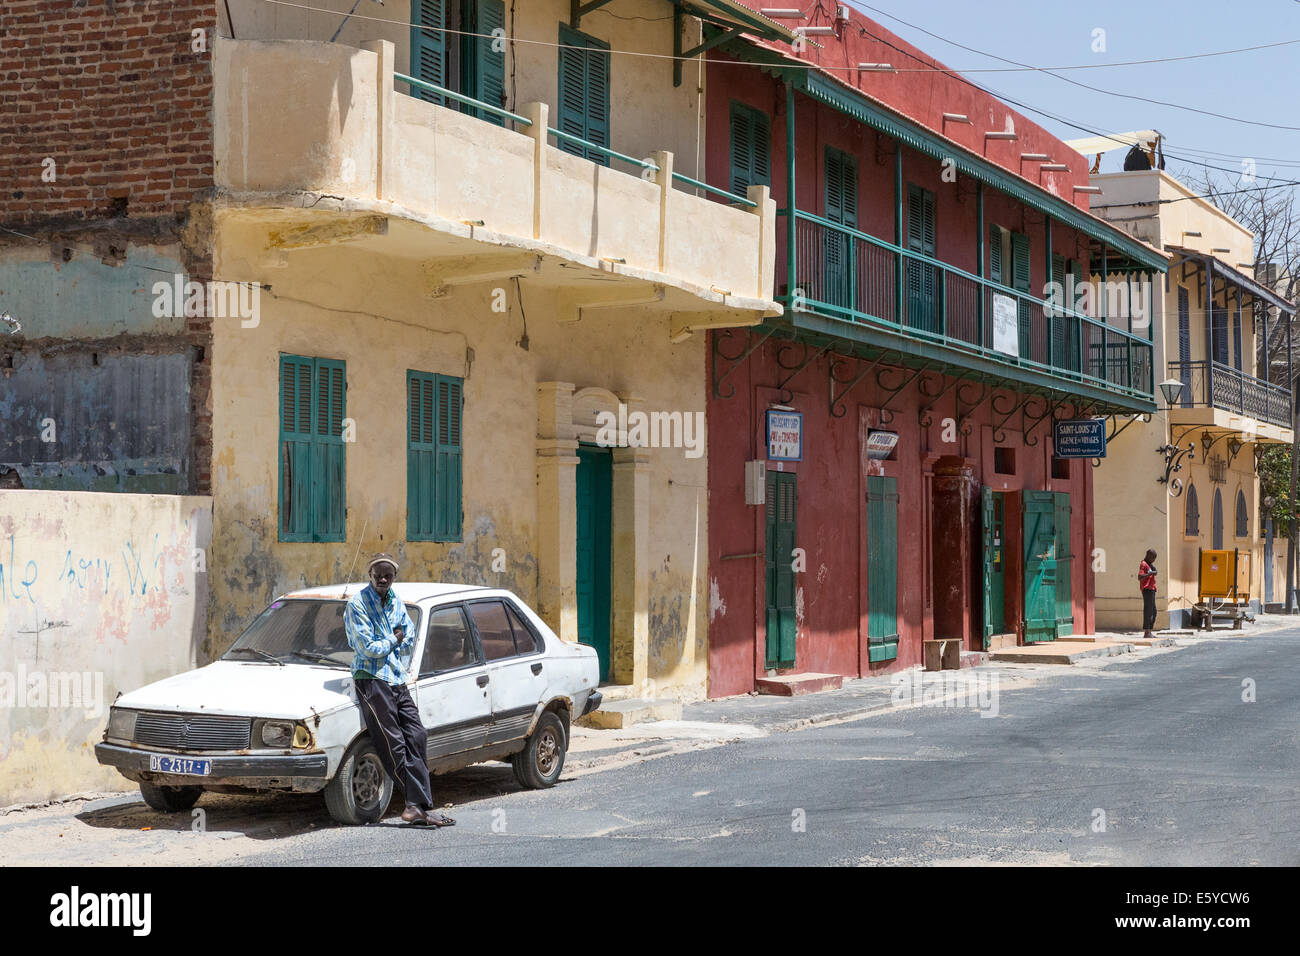 Man resting on car in historic, St. Louis, Senegal Stock Photo